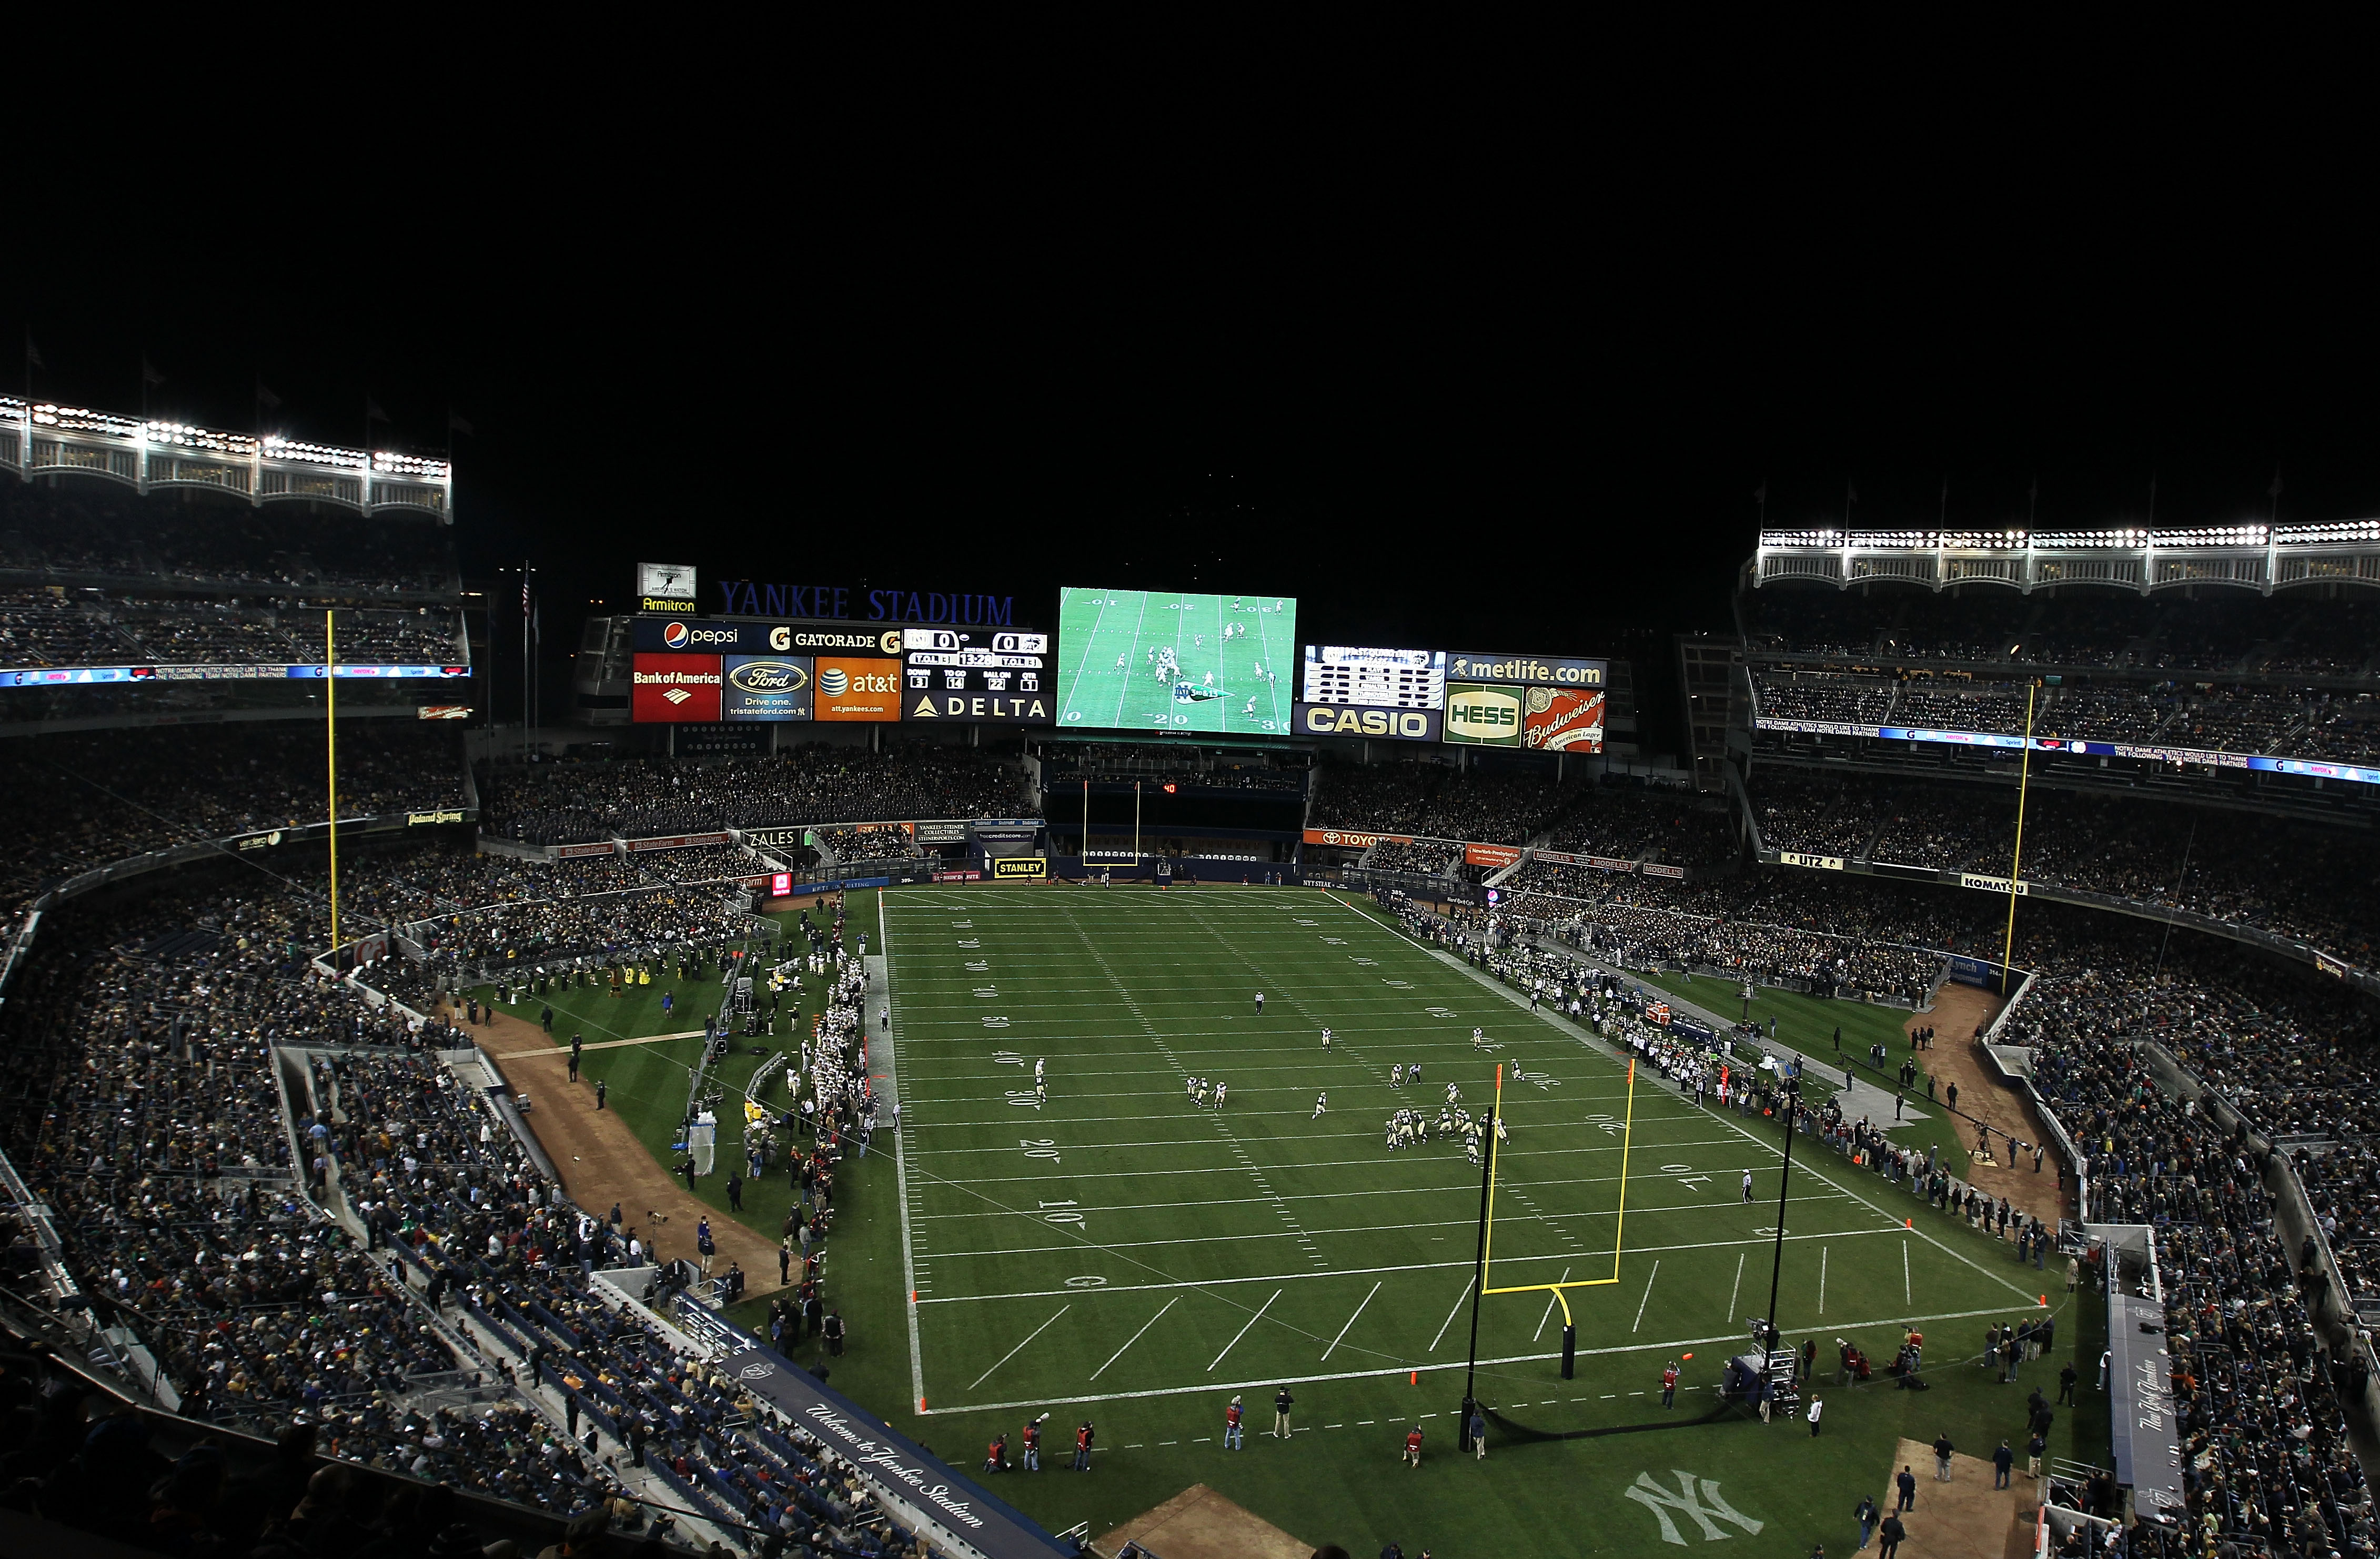 NEW YORK - NOVEMBER 20:  A general view during the game between the Notre Dame Fighting Irish and the Army Black Knights at Yankee Stadium on November 20, 2010 in the Bronx borough of New York City.  (Photo by Nick Laham/Getty Images)